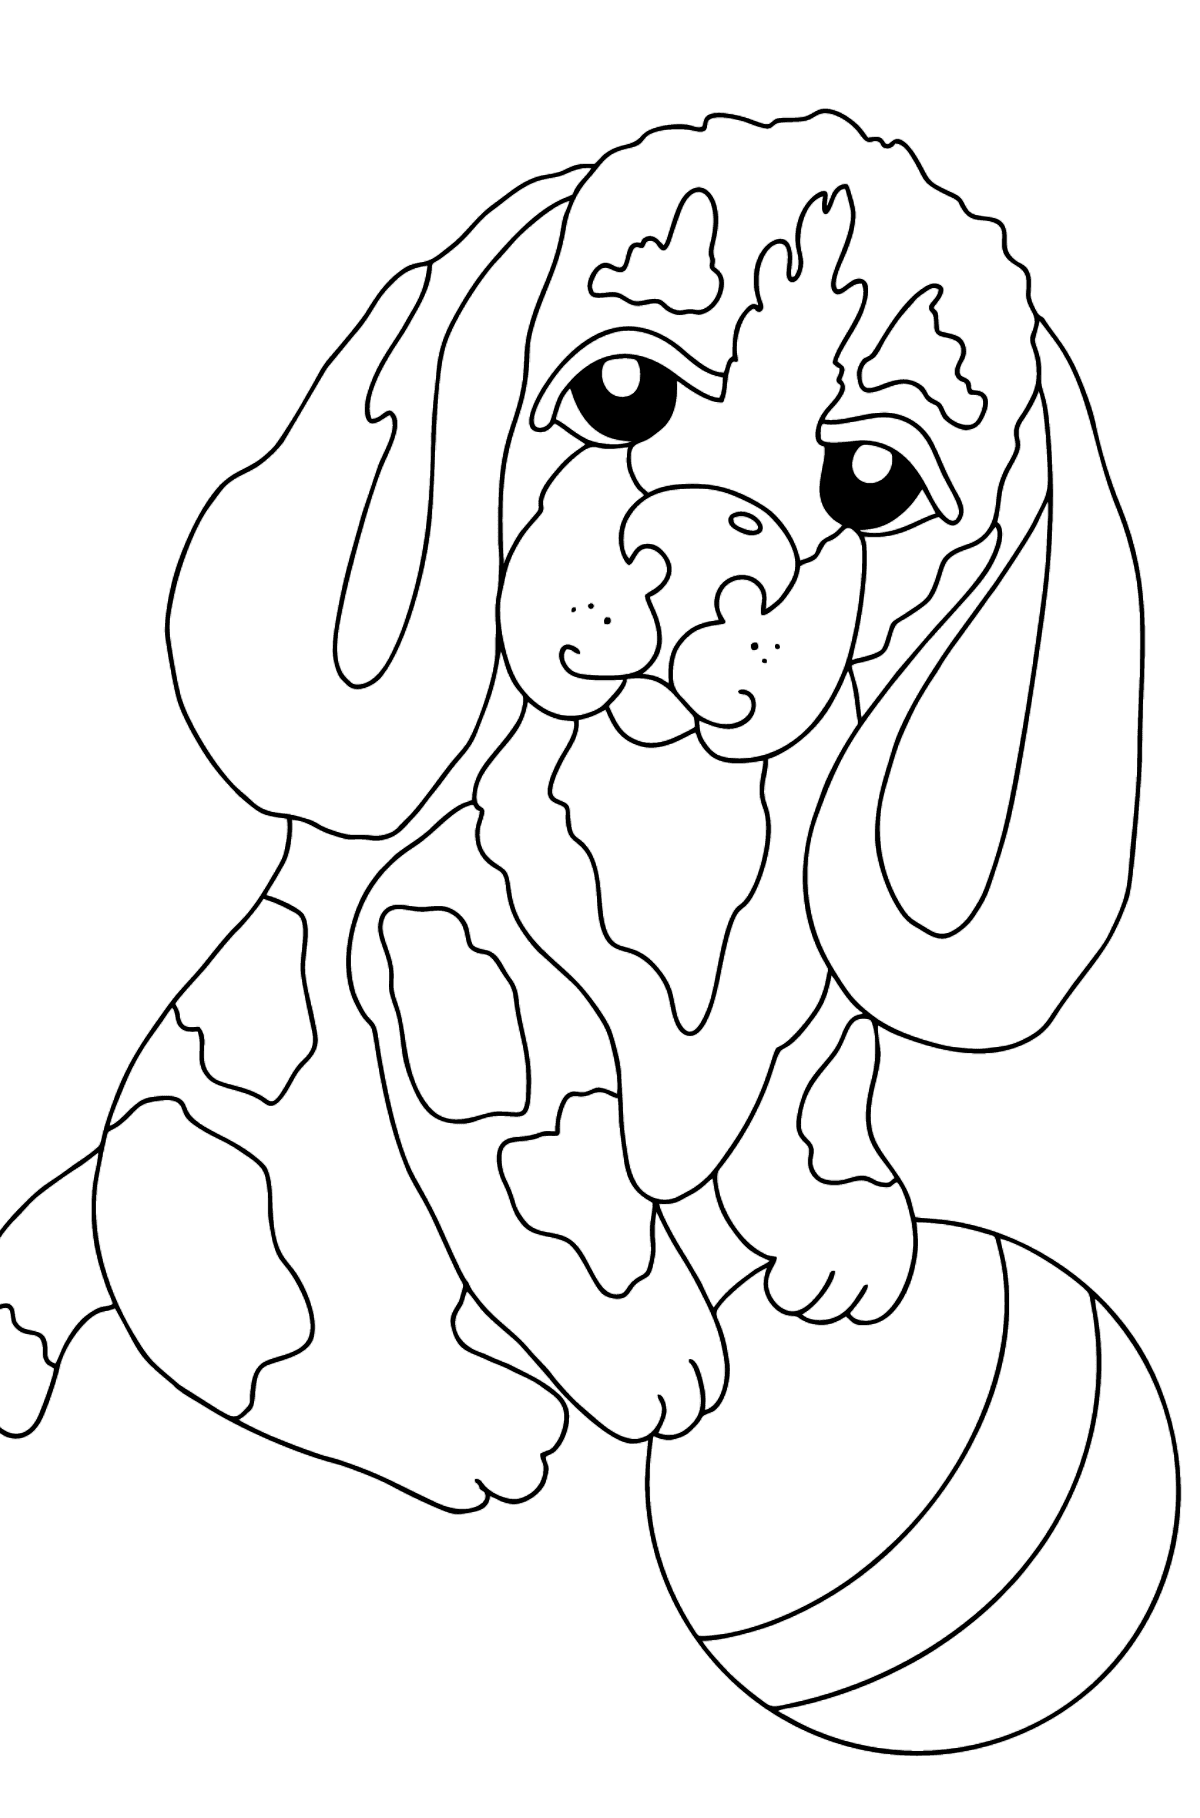 Coloring Page - A Dog is Playing with a Blue Ball  - Coloring Pages for Kids